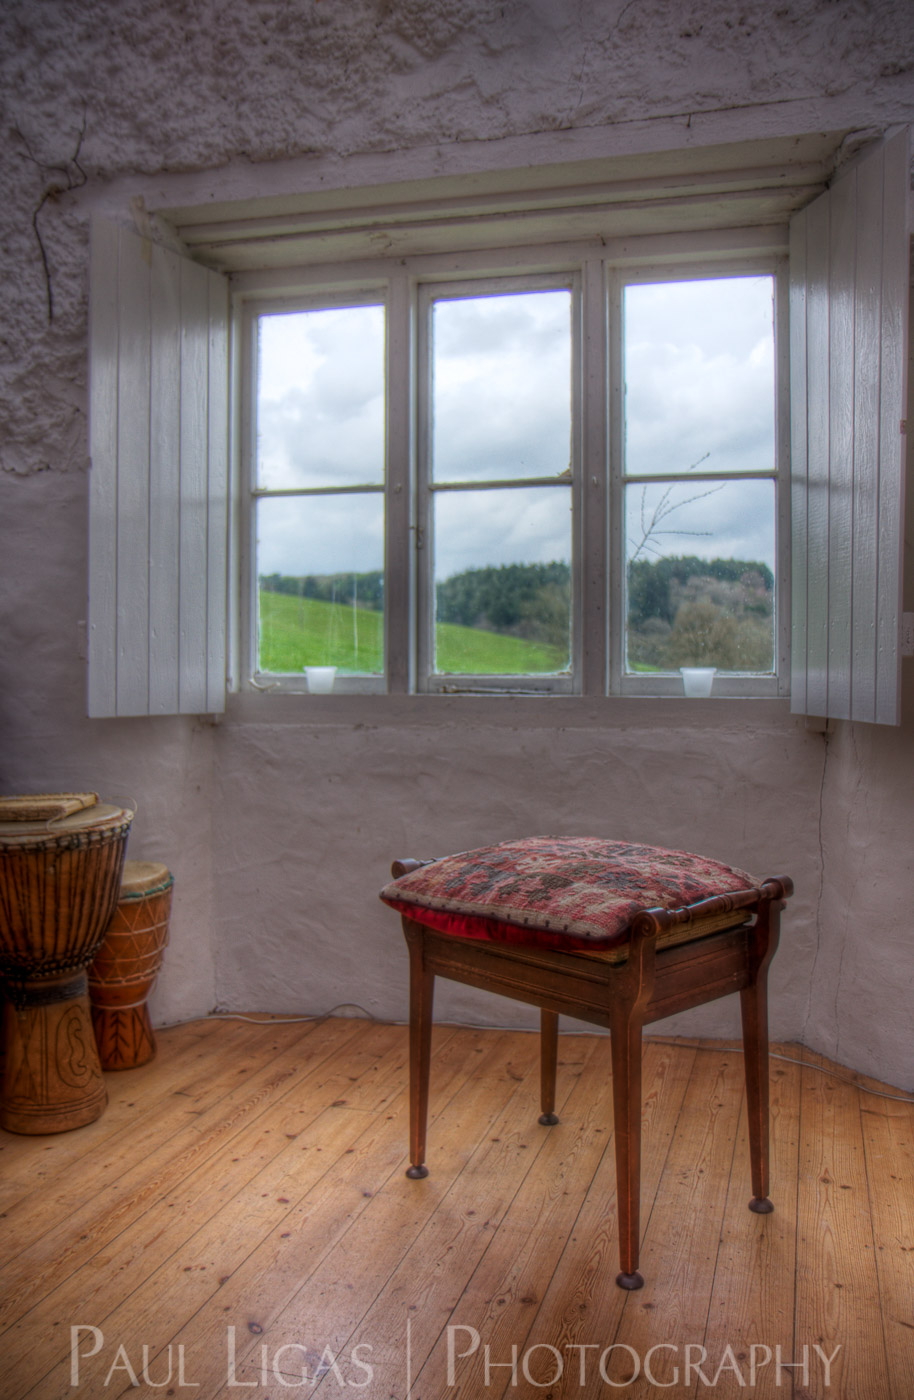 Stool and window, interior design photographer photography property hereford 3151